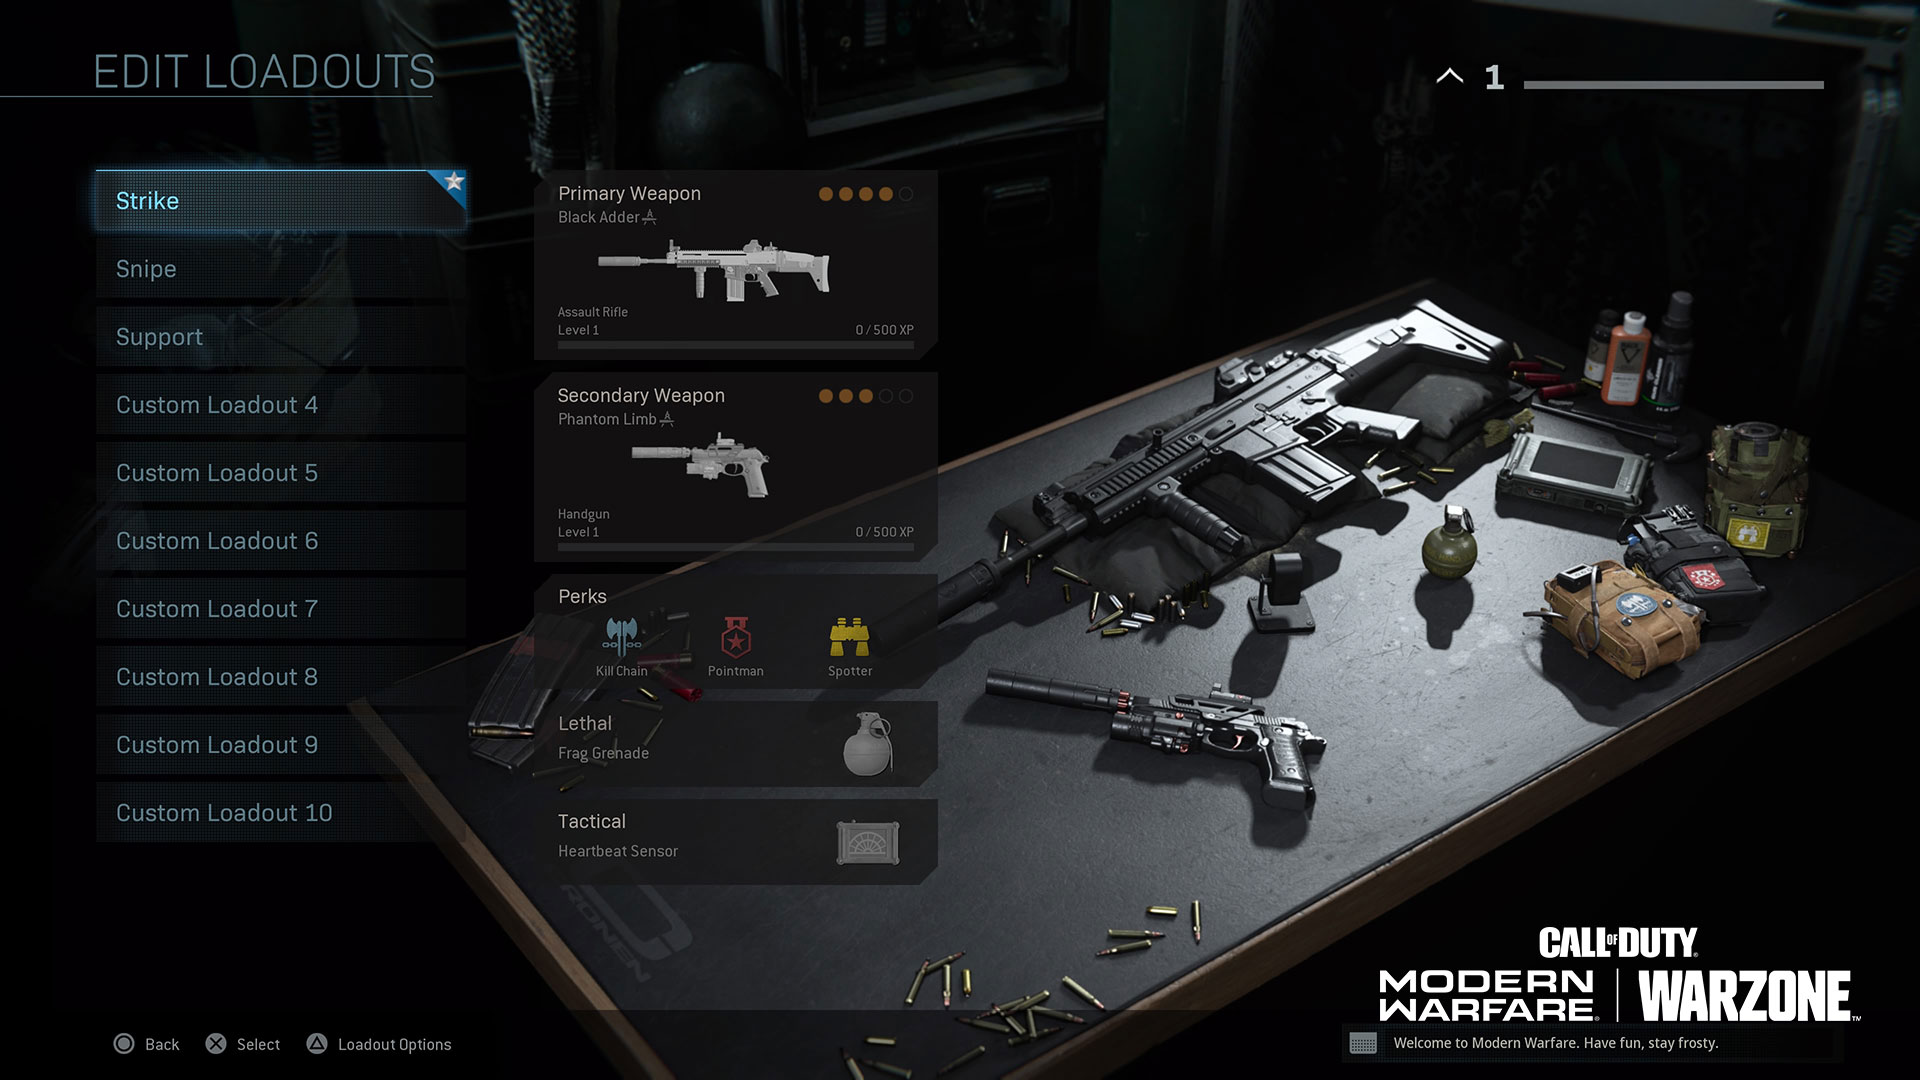 This loadout is great for players